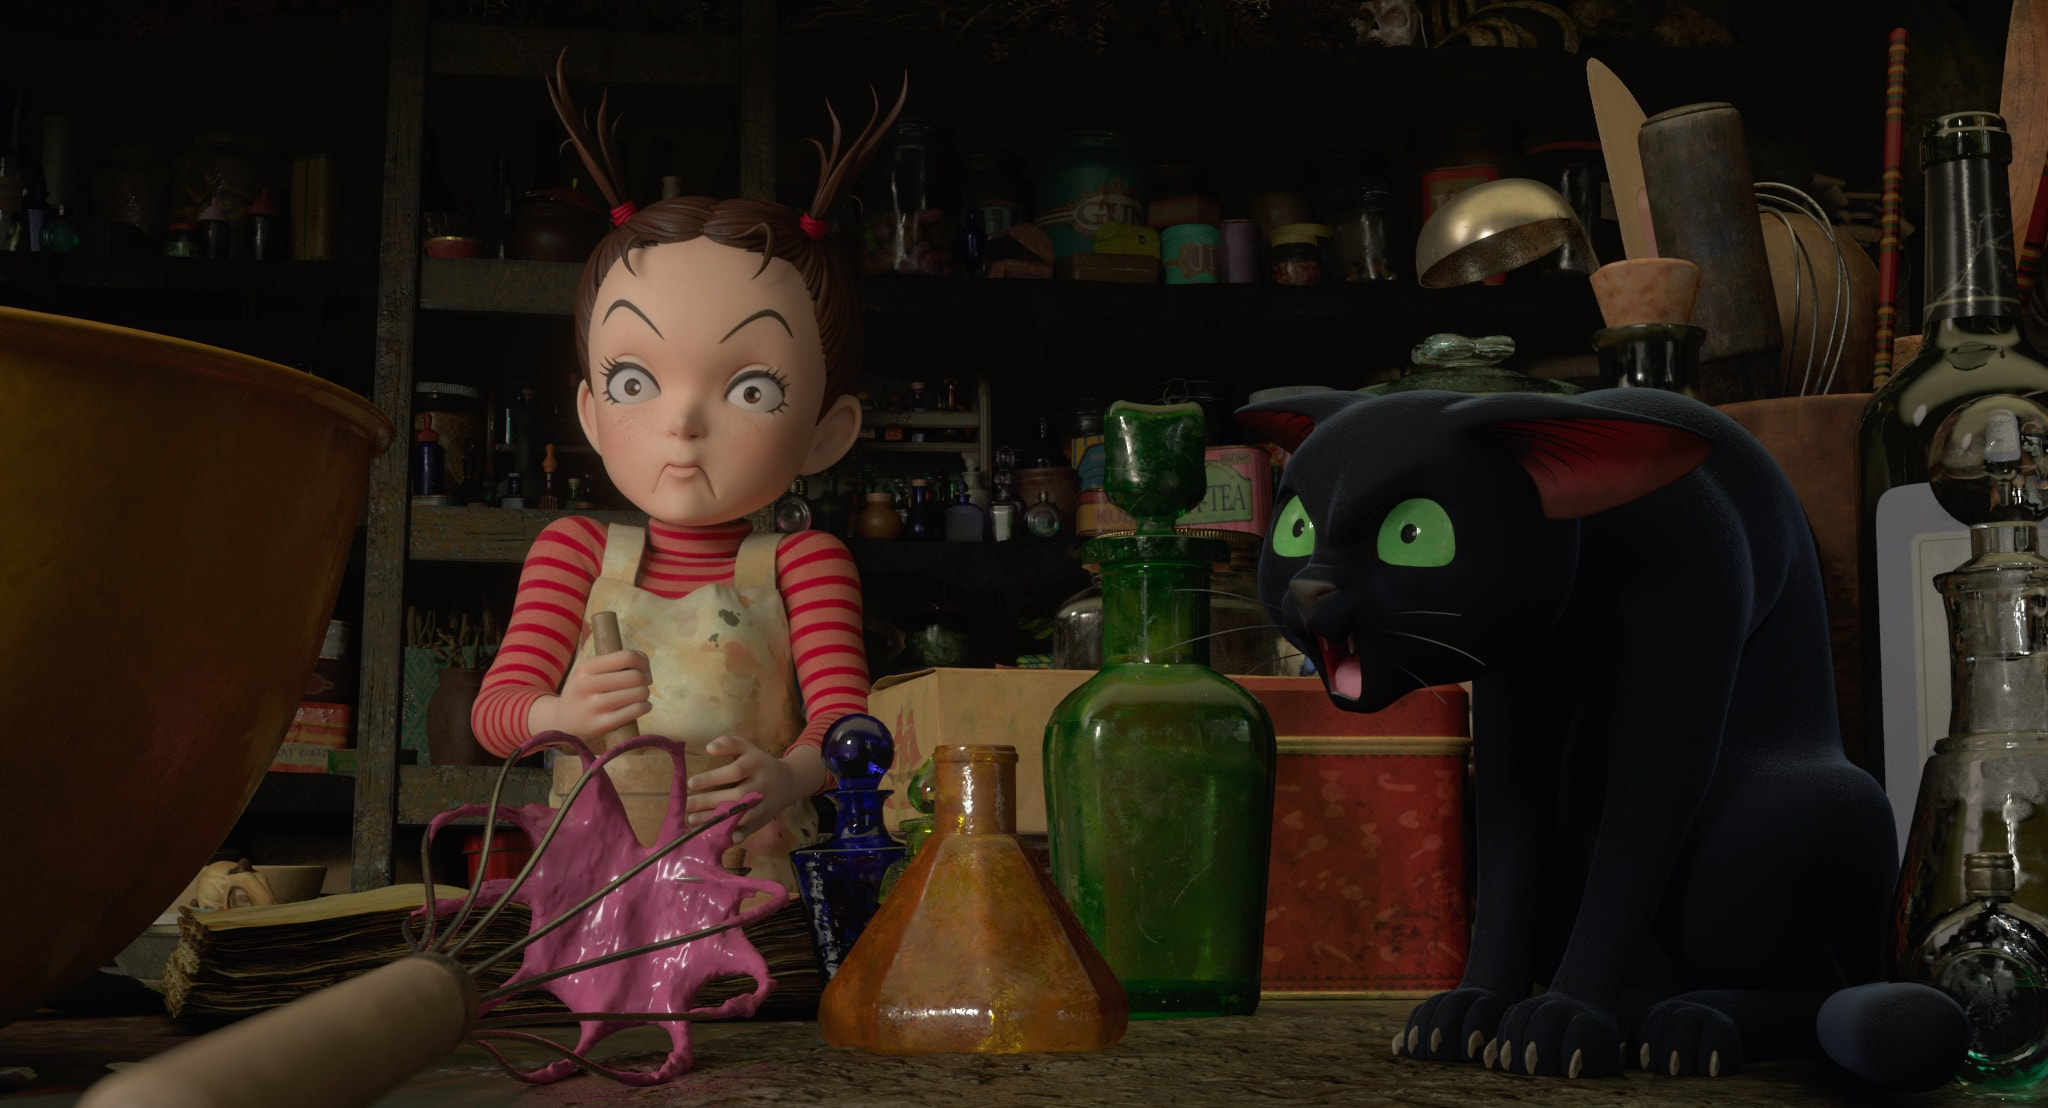 Checa el tráiler de 'Earwig and the Witch', la nueva cinta de Studio Ghibli